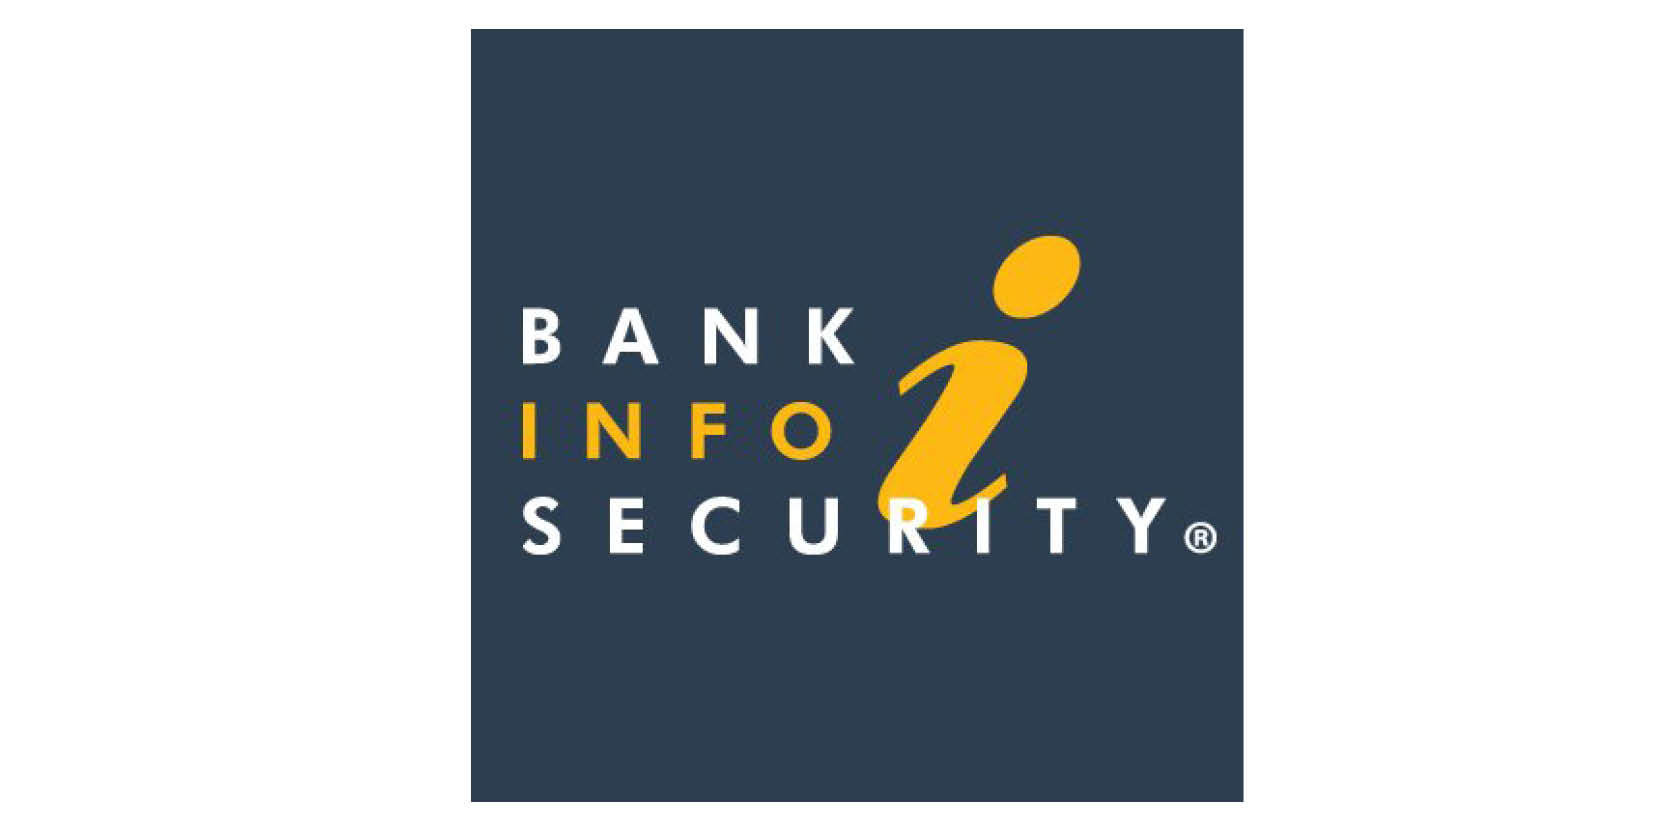 BankInfoSec: After 2 Years, WannaCry Remains a Threat